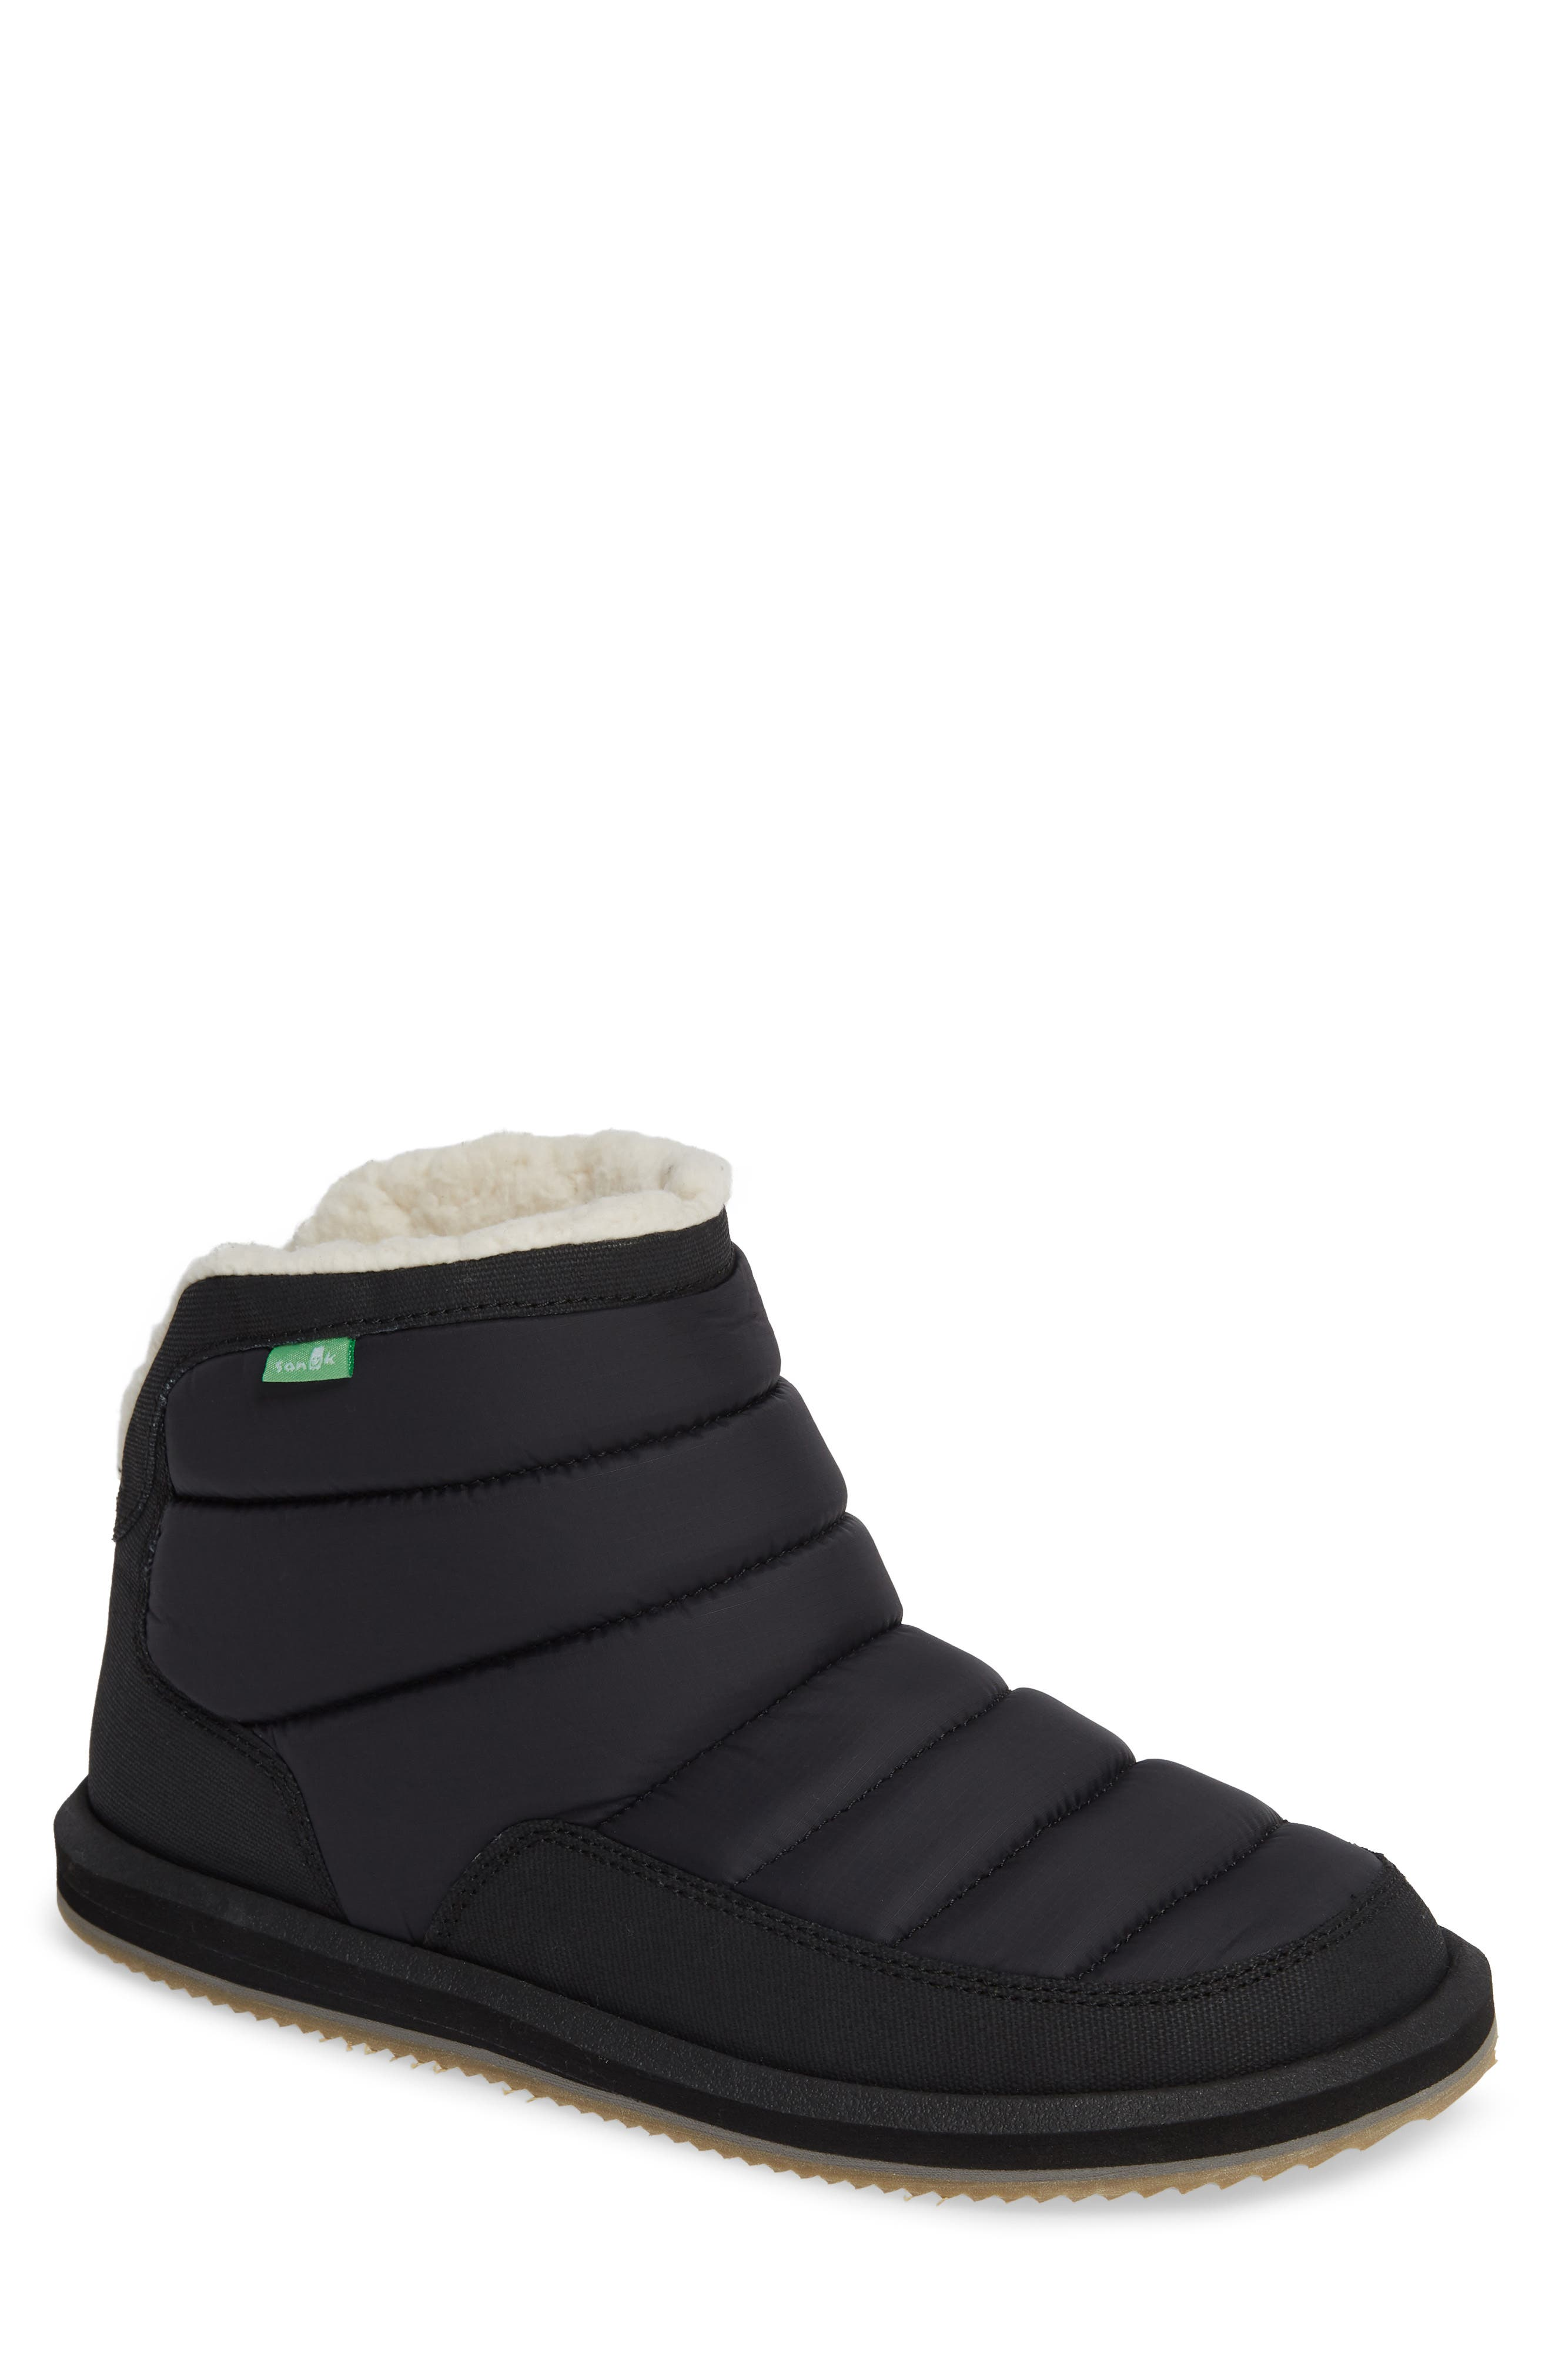 SANUK Puff & Chill Weather Boot, Main, color, 001